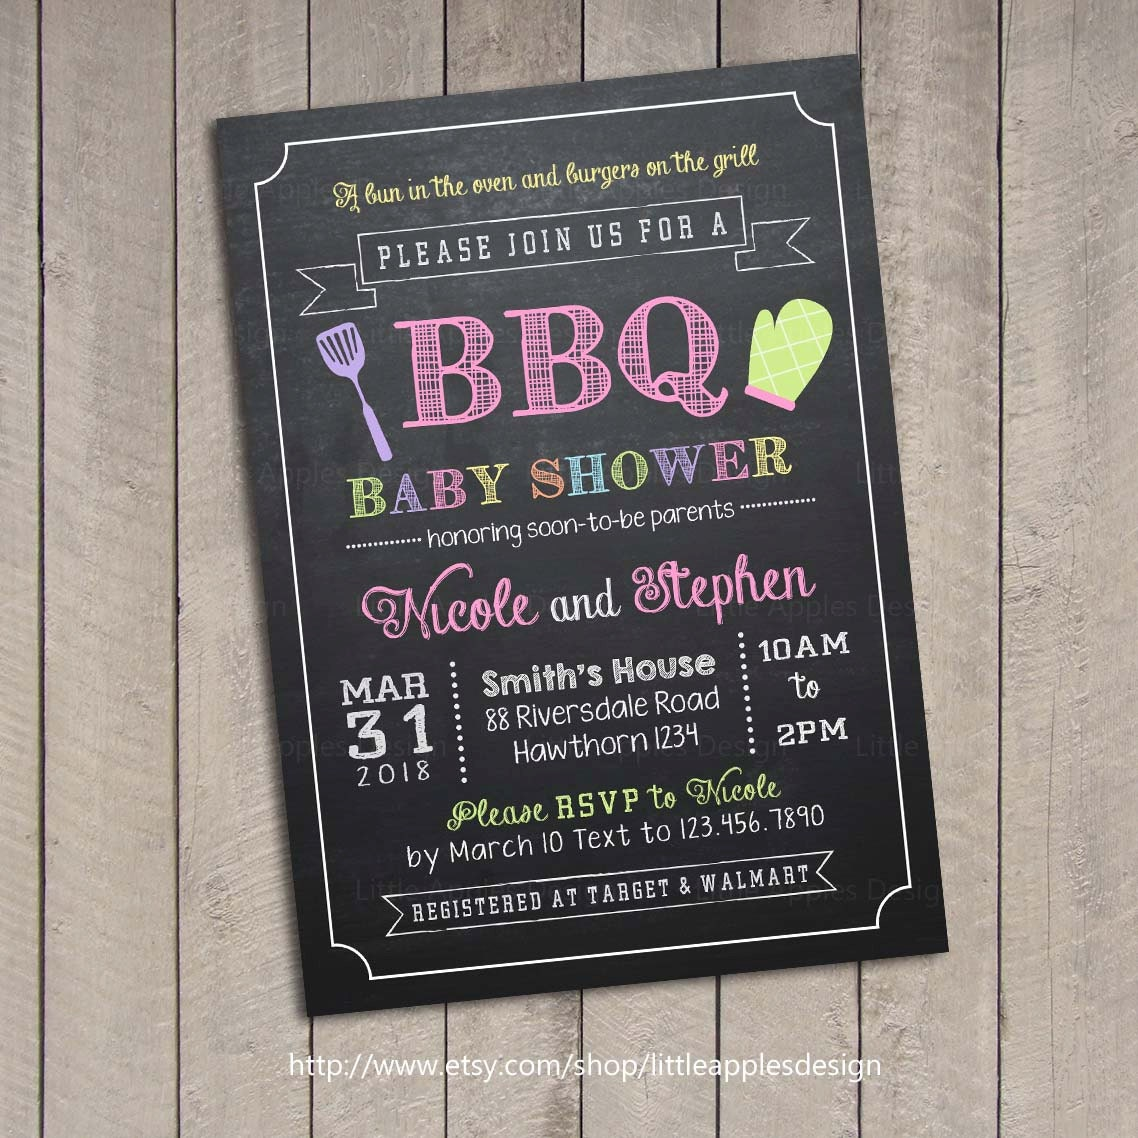 baby shower bbq invitation bbq baby invitations bbq baby